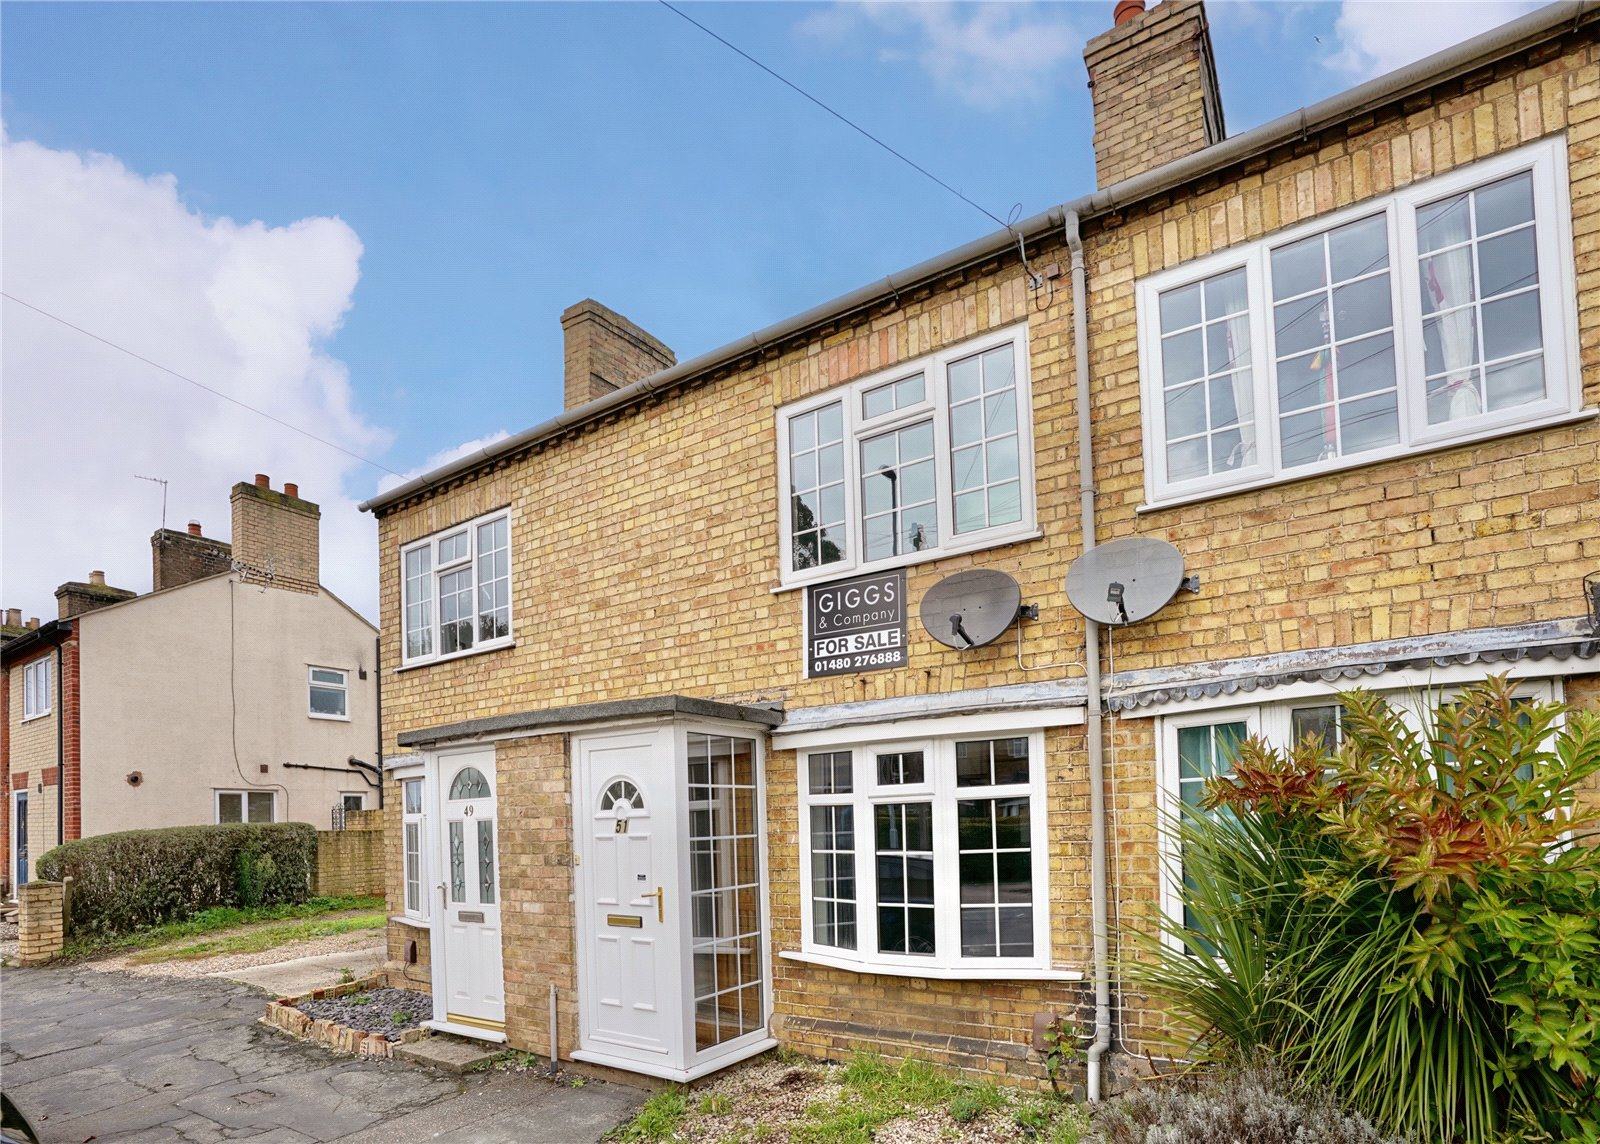 2 bed house for sale in Eaton Ford, PE19 7BA - Property Image 1